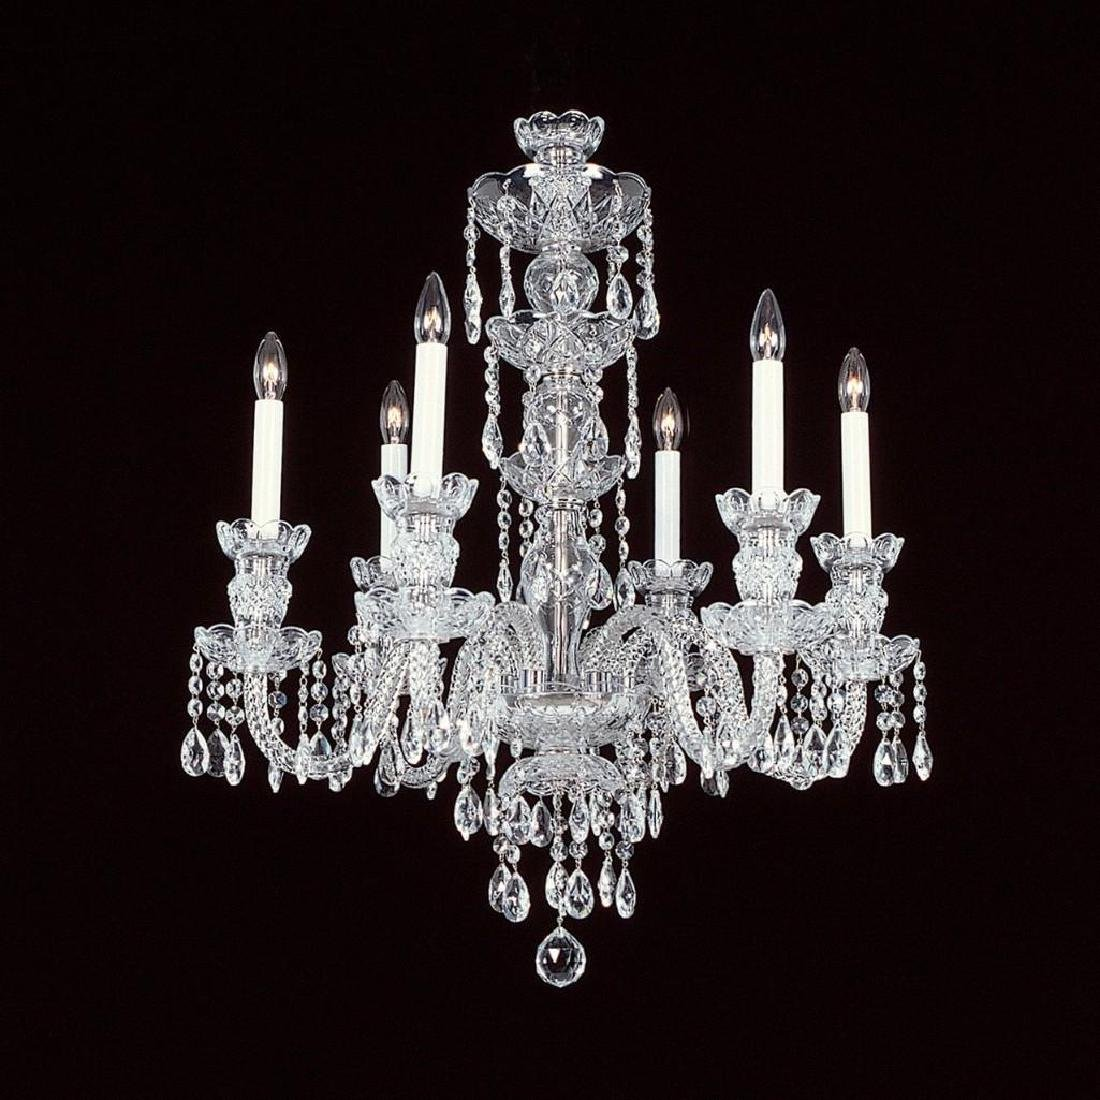 6-R-8 NF - 6 LIGHT CRYSTAL CHANDELIER WITH SWAROVSKI -